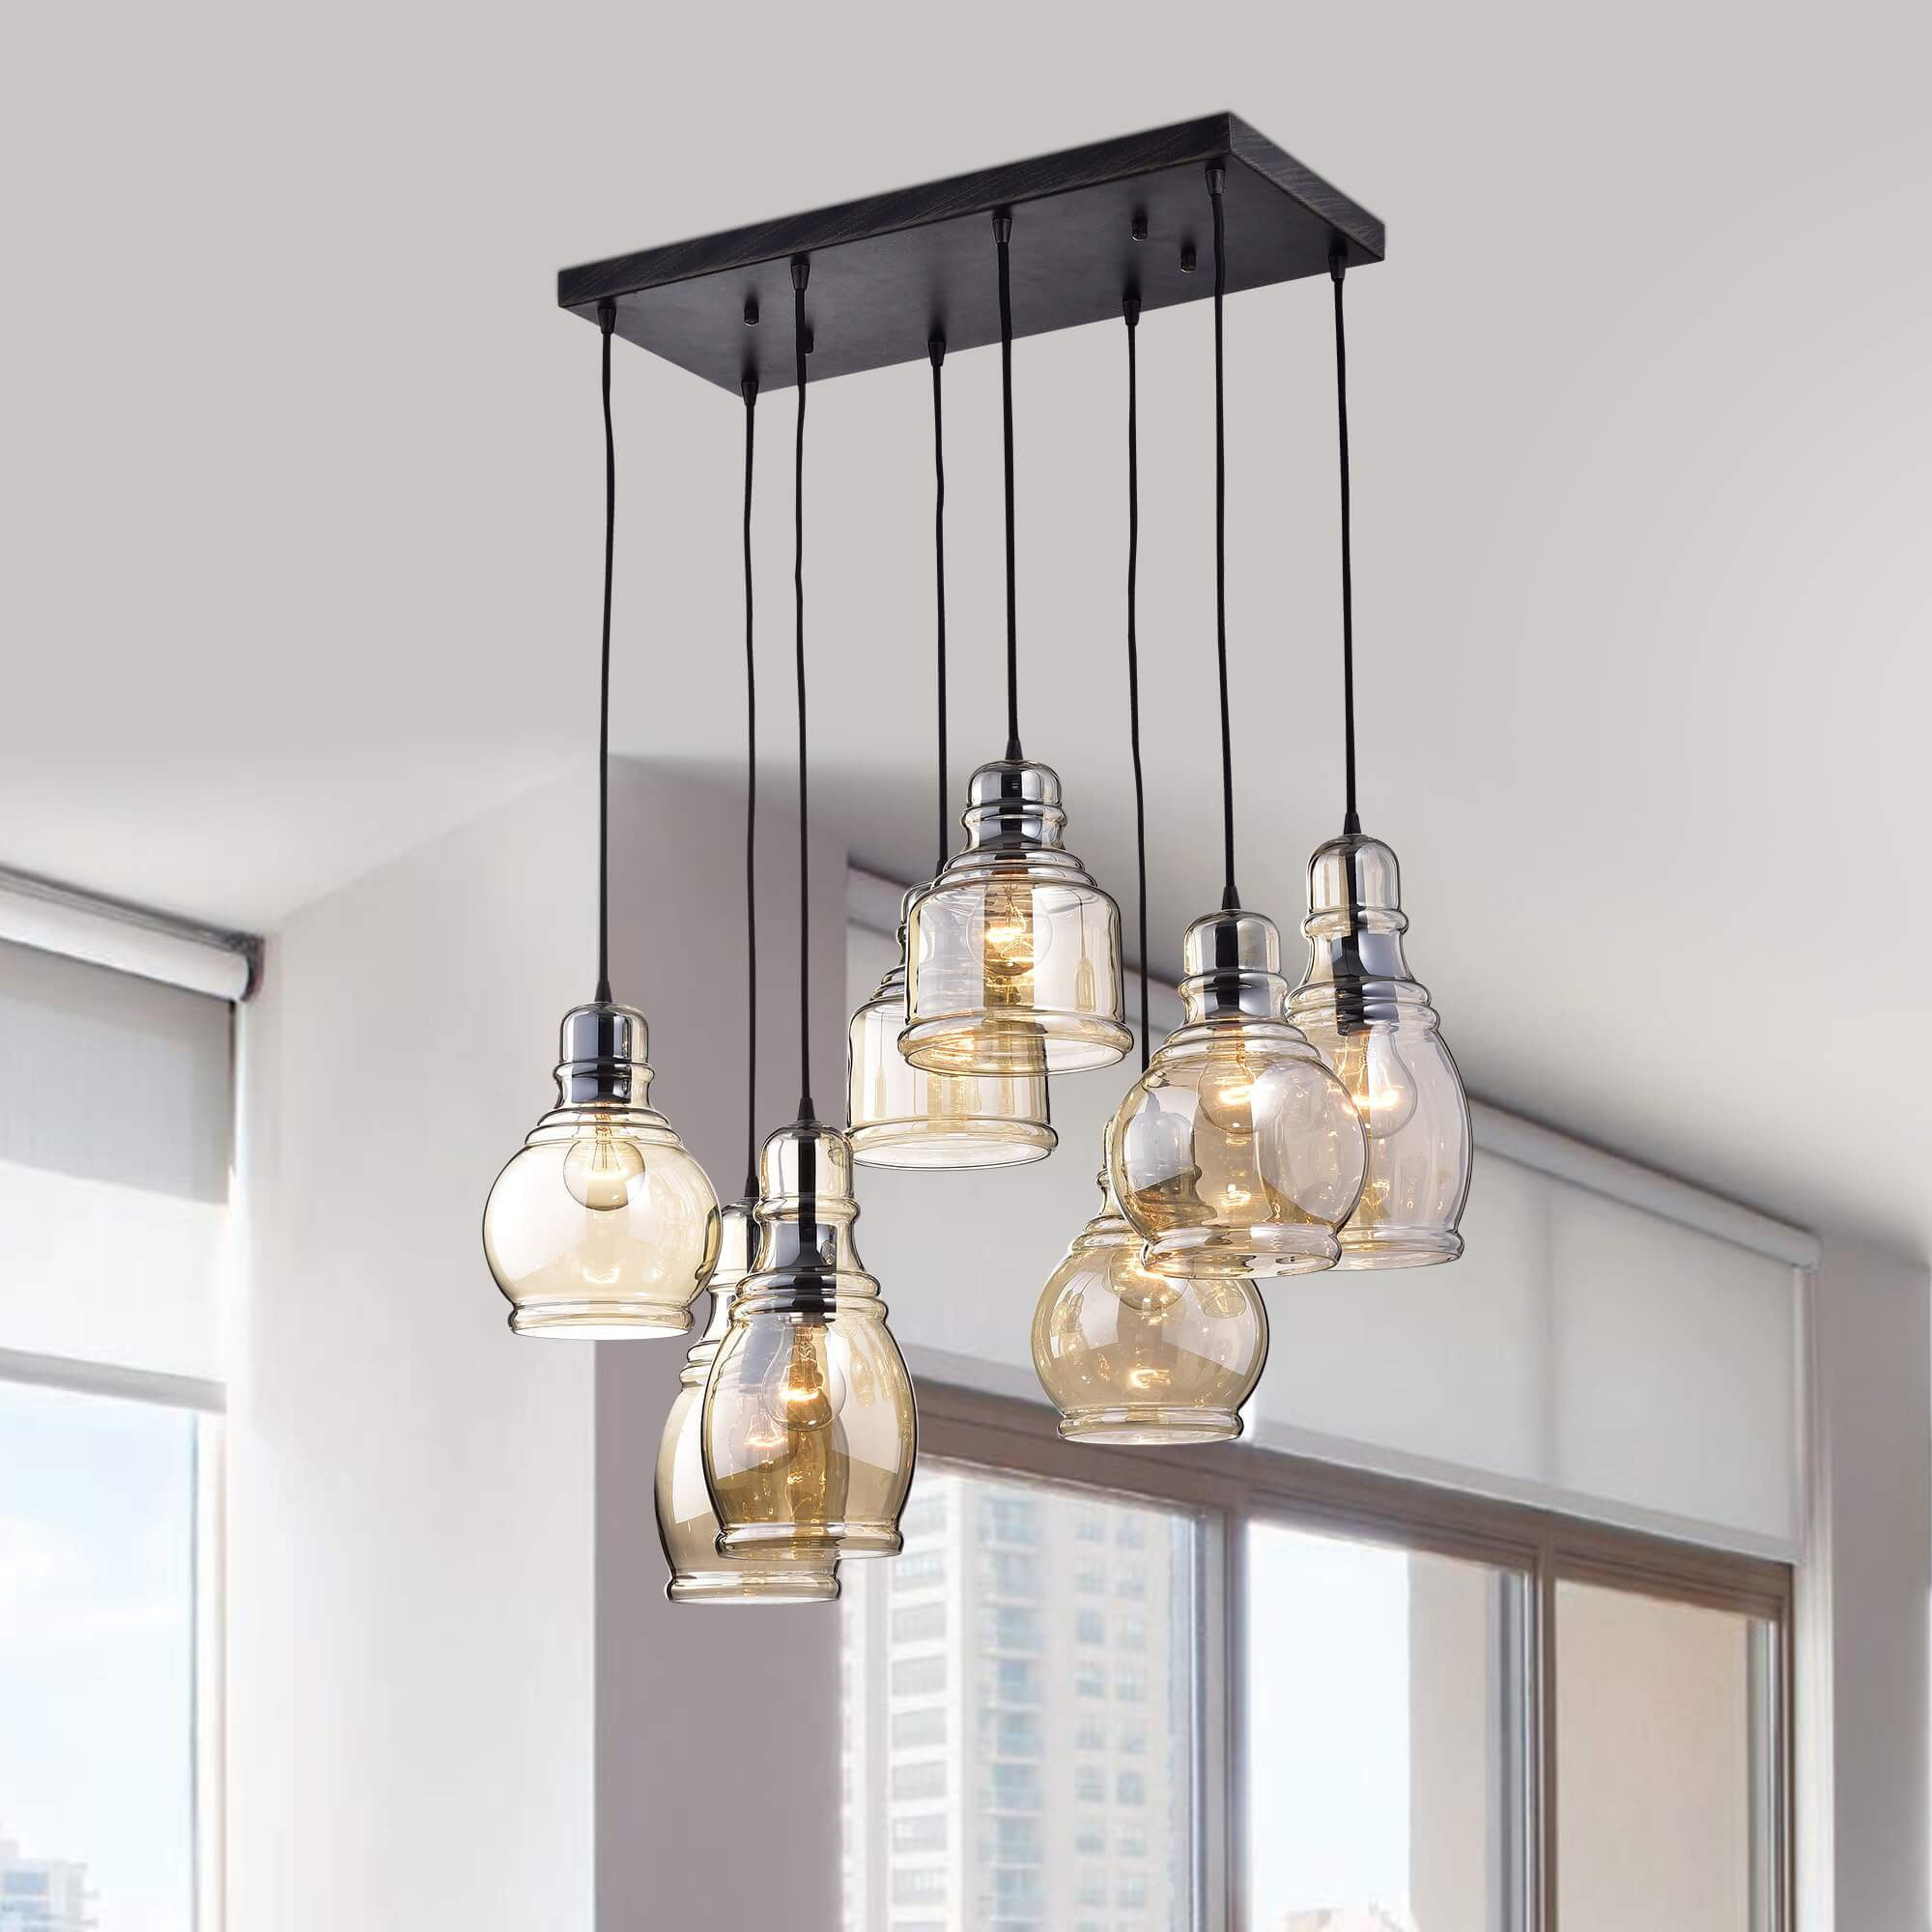 Realtimecampaign.com Advises to Improve A Home With Beautiful Lighting Including Pendant Lighting